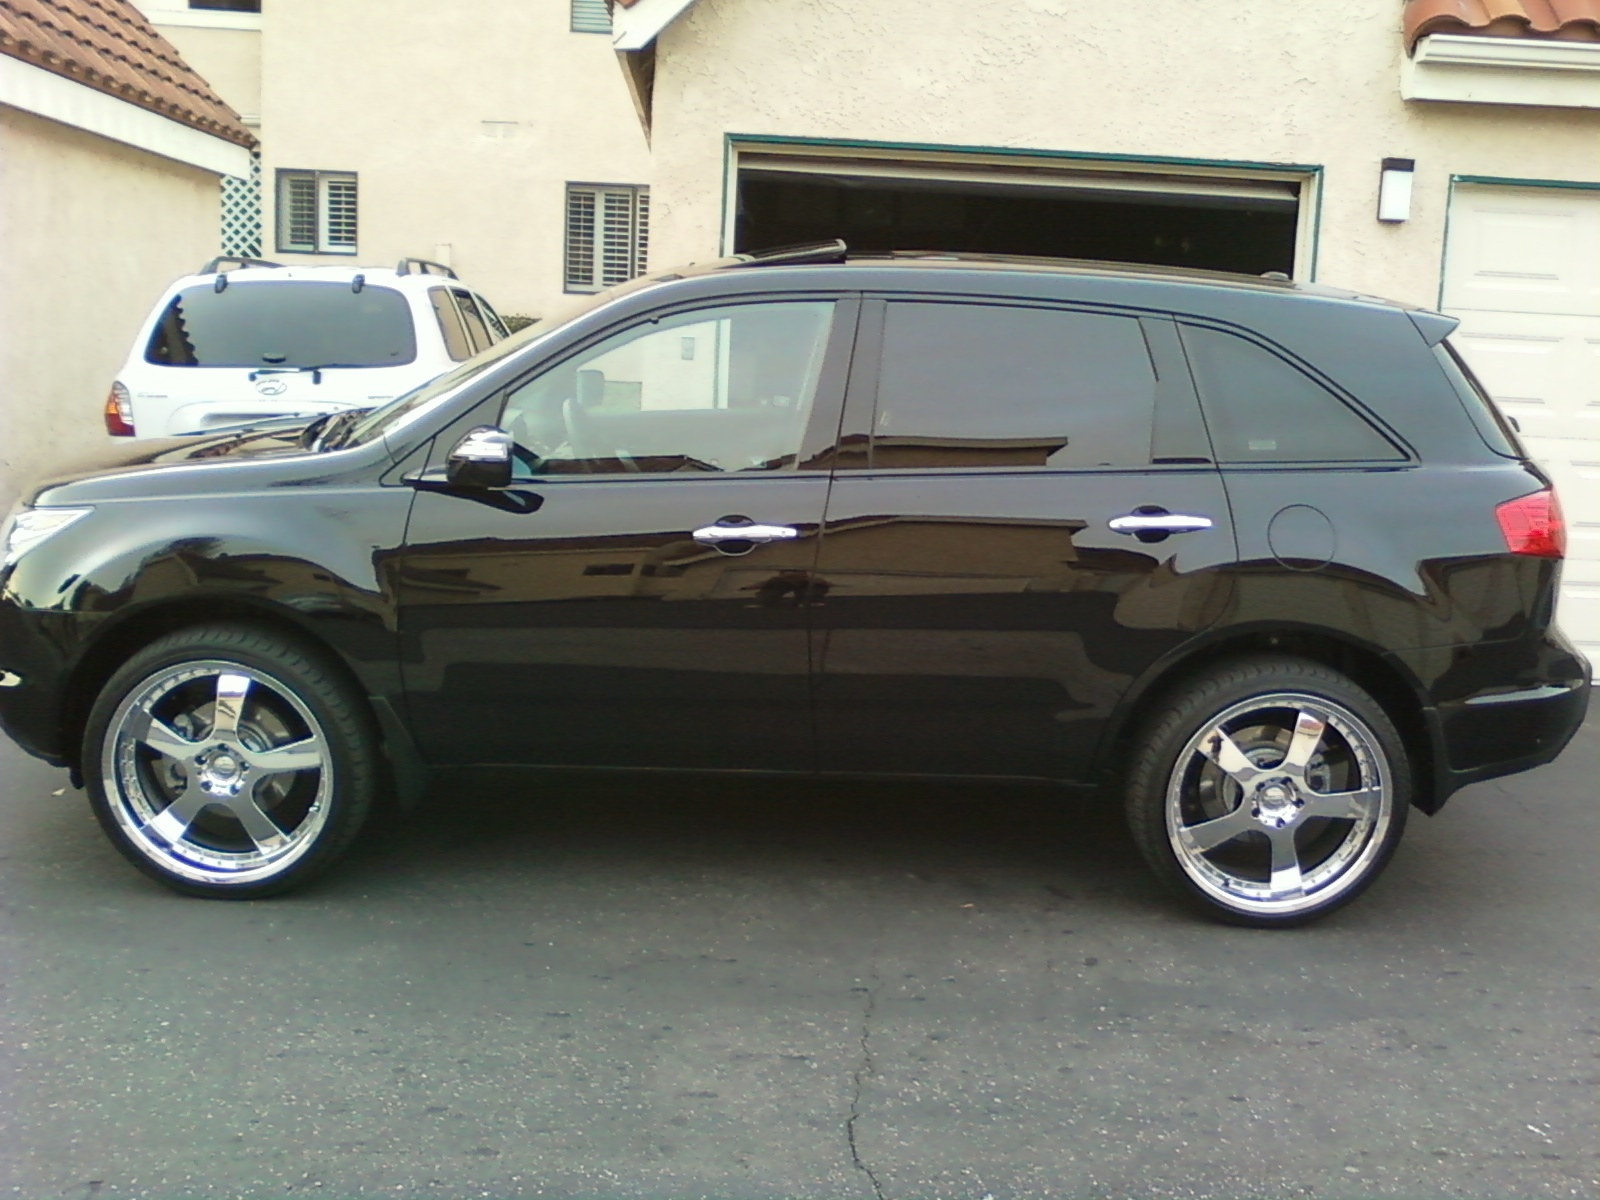 resolution acura of mdx image wallpaper rear picture htm angle